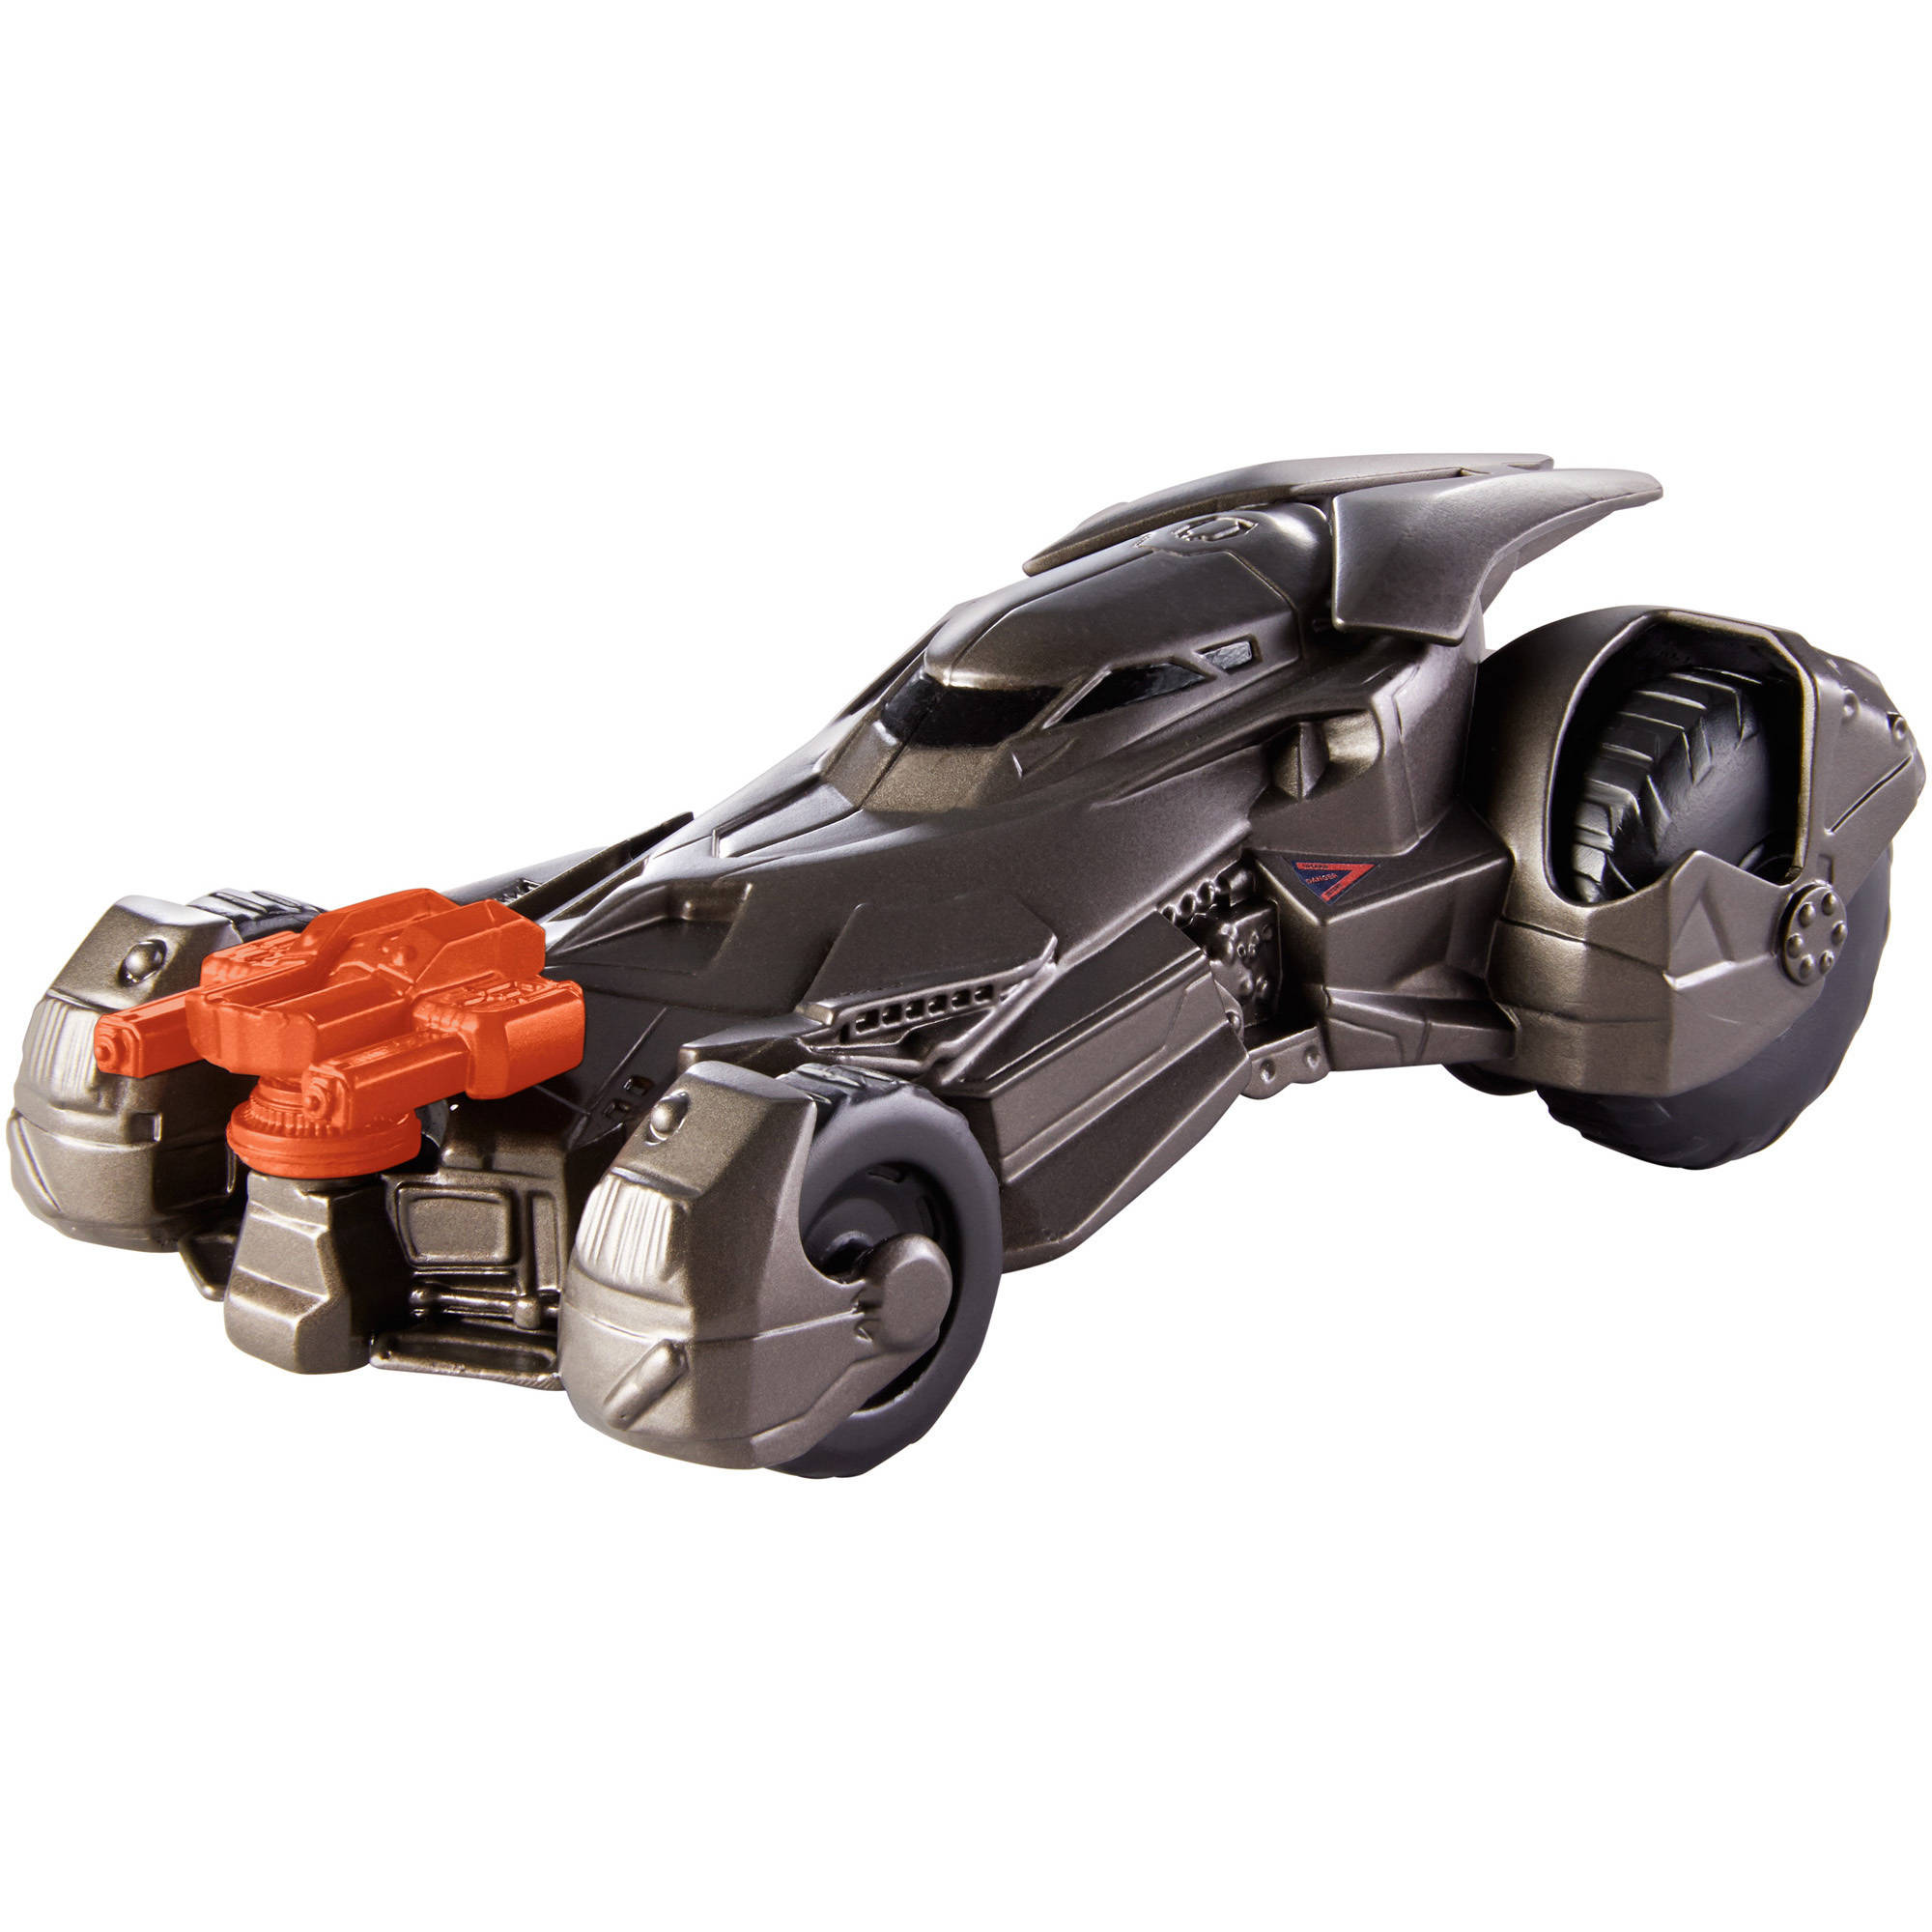 Batman V Superman: Dawn of Justice Speed Strike Batmobile Vehicle